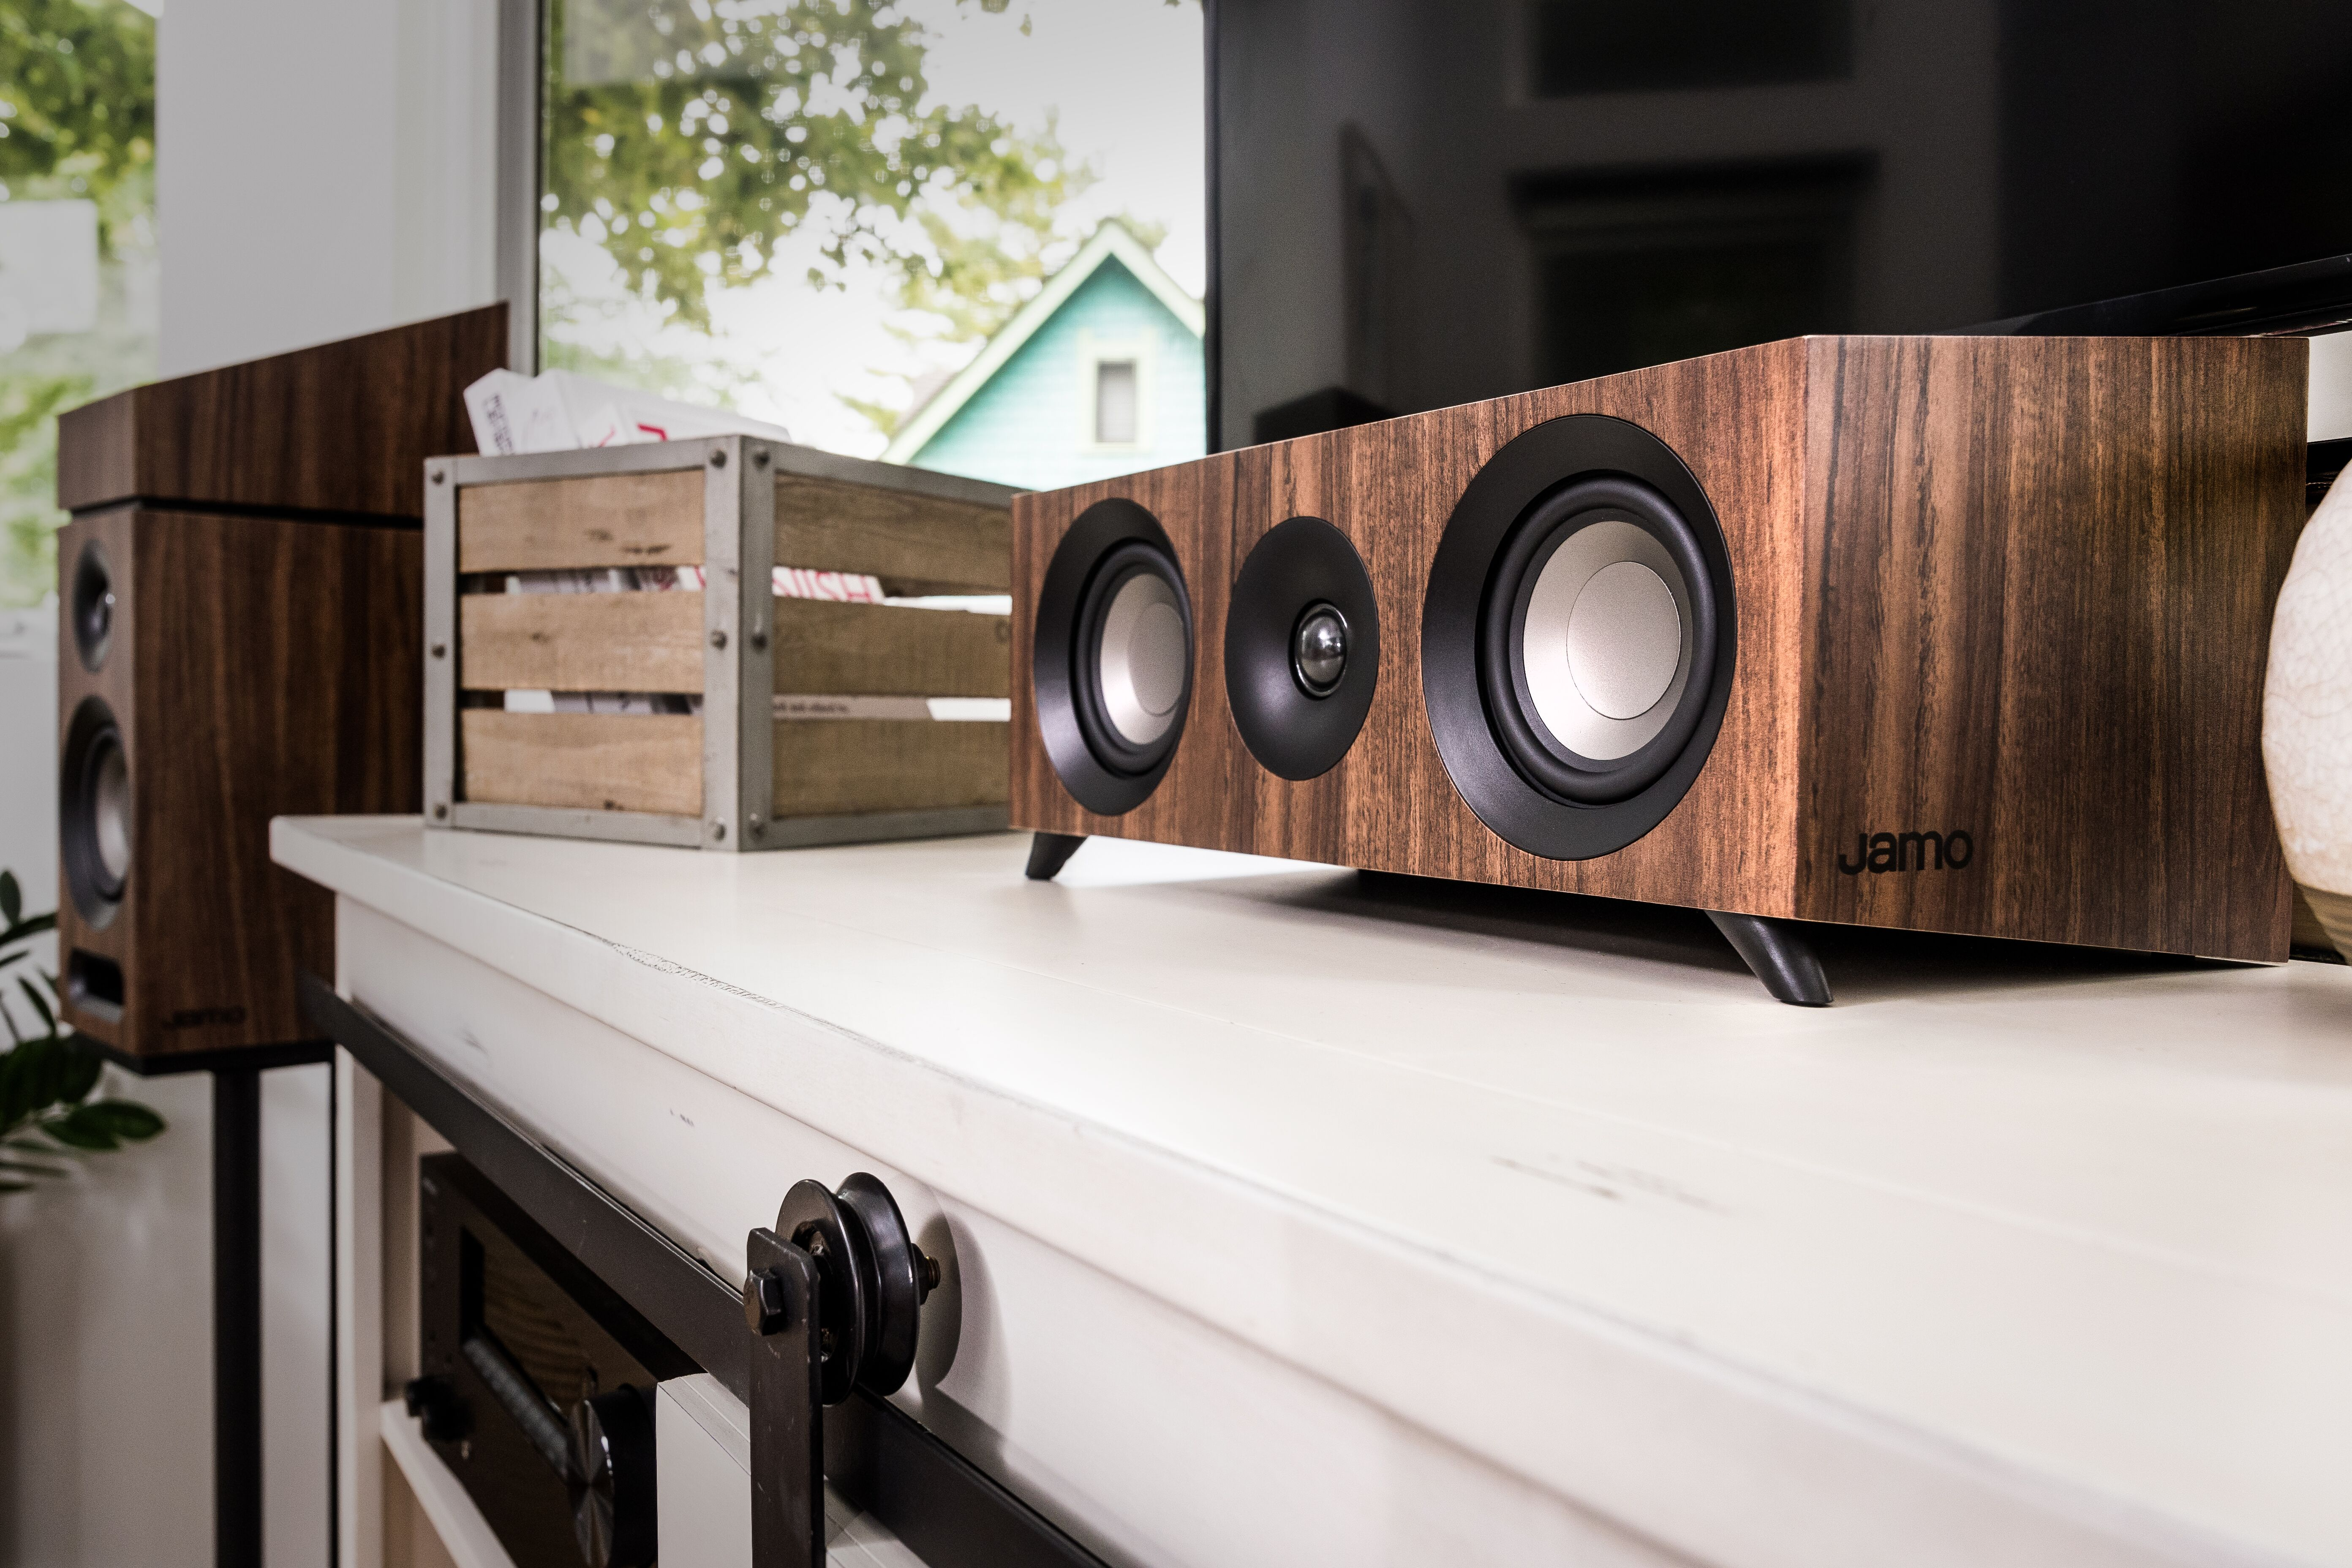 Jamo center S 81 CEN | HayAudio.com